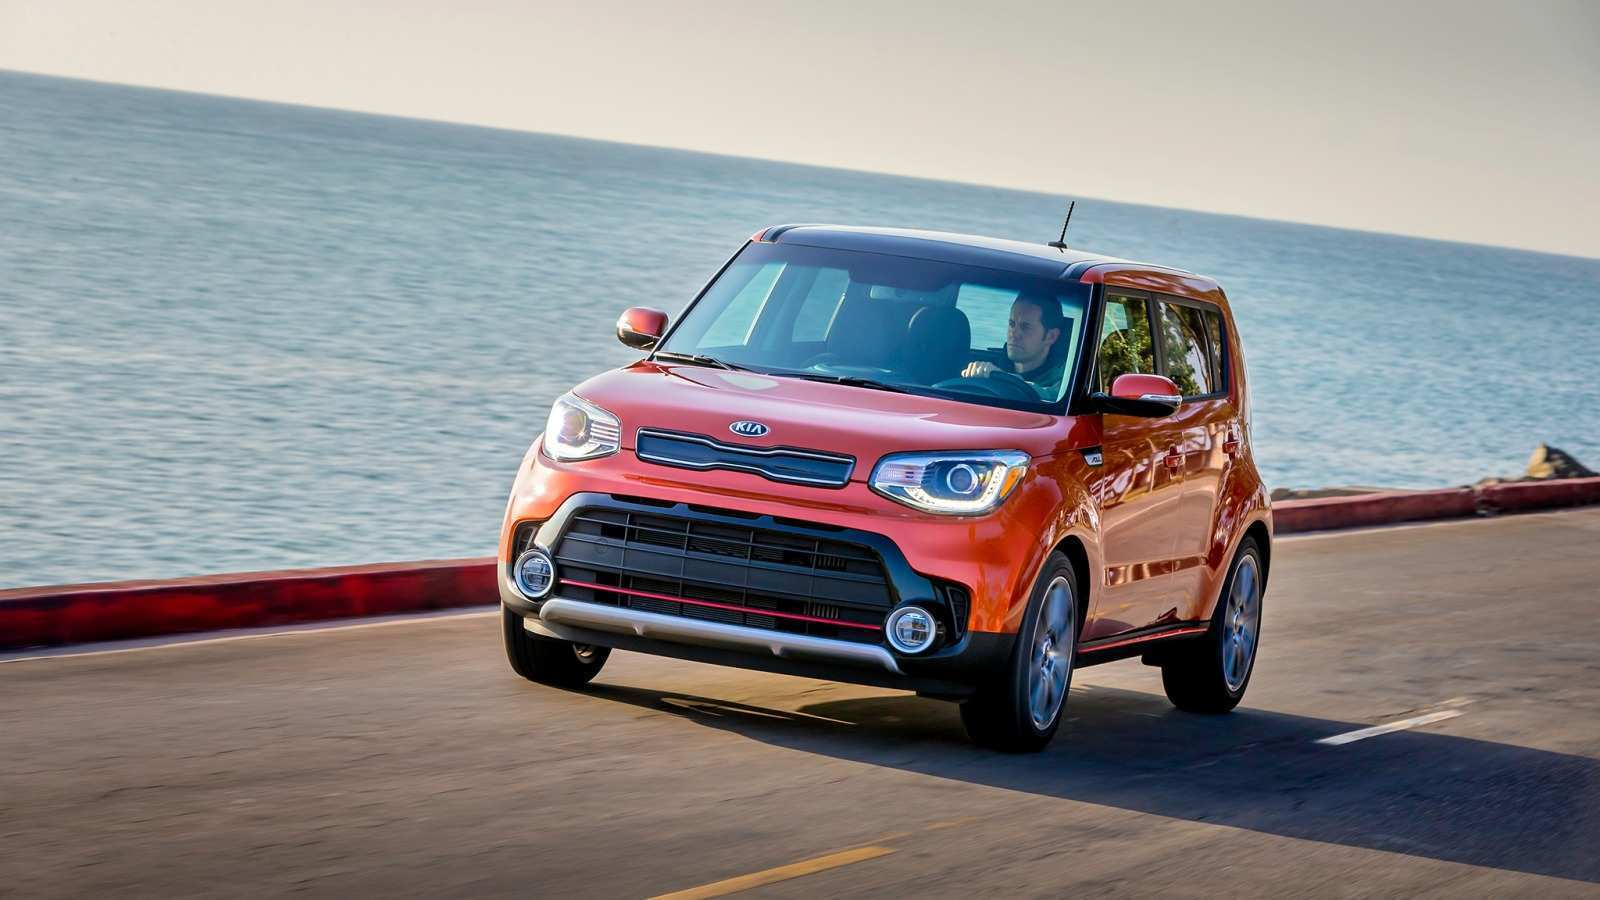 69 All New Best Kia Ev Soul 2019 Price And Review Style by Best Kia Ev Soul 2019 Price And Review